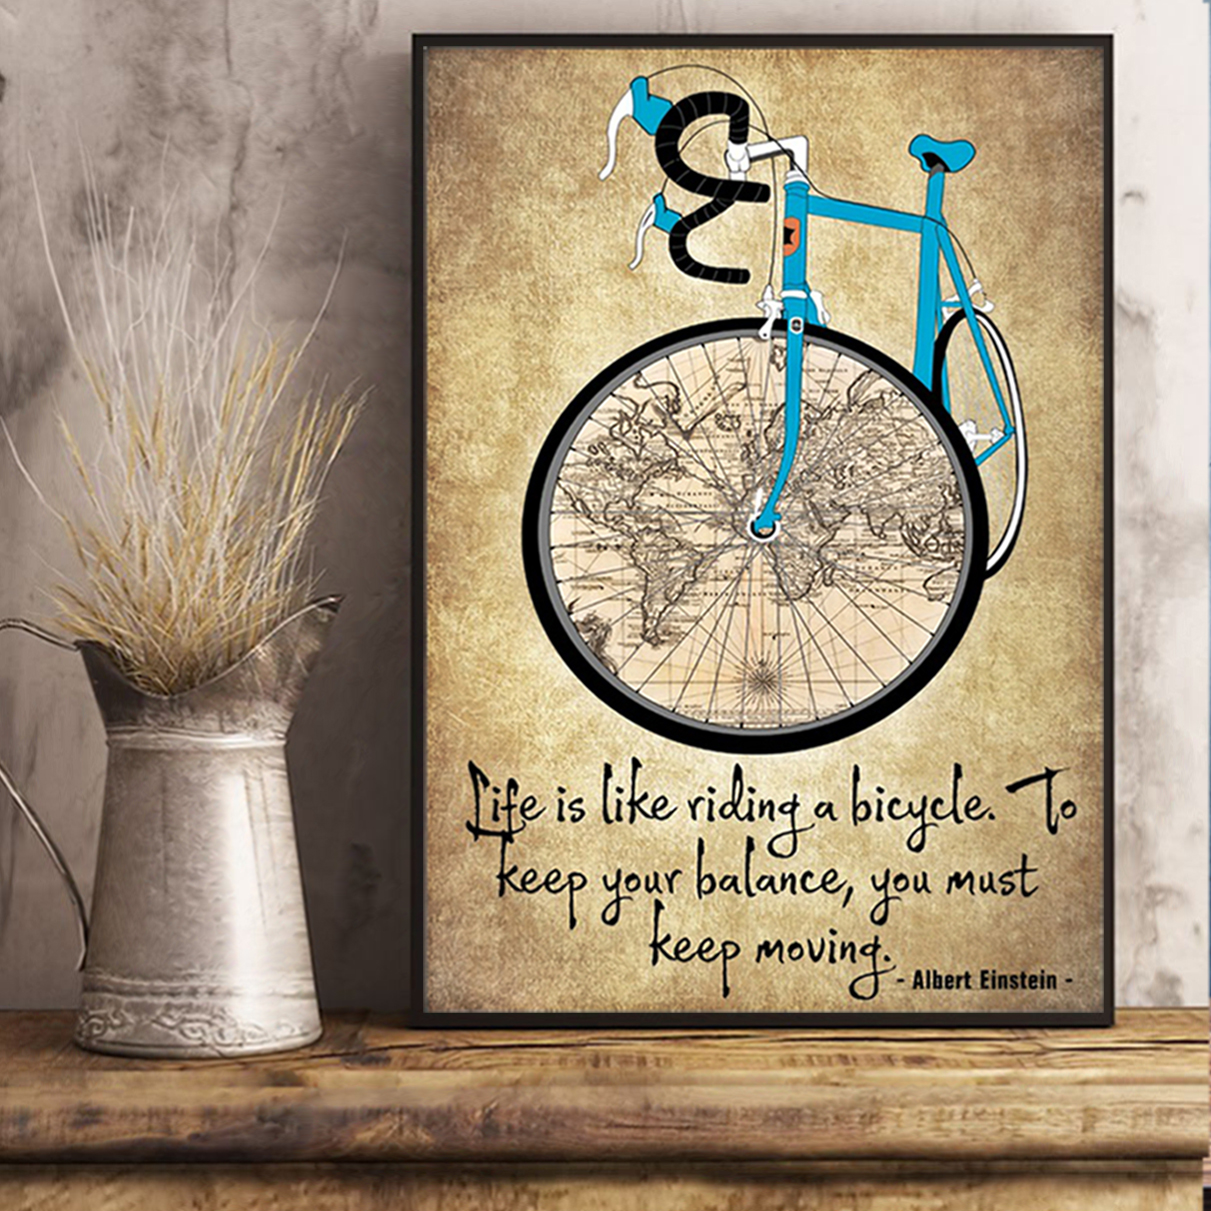 Cycling life is like riding a bicycle poster A2